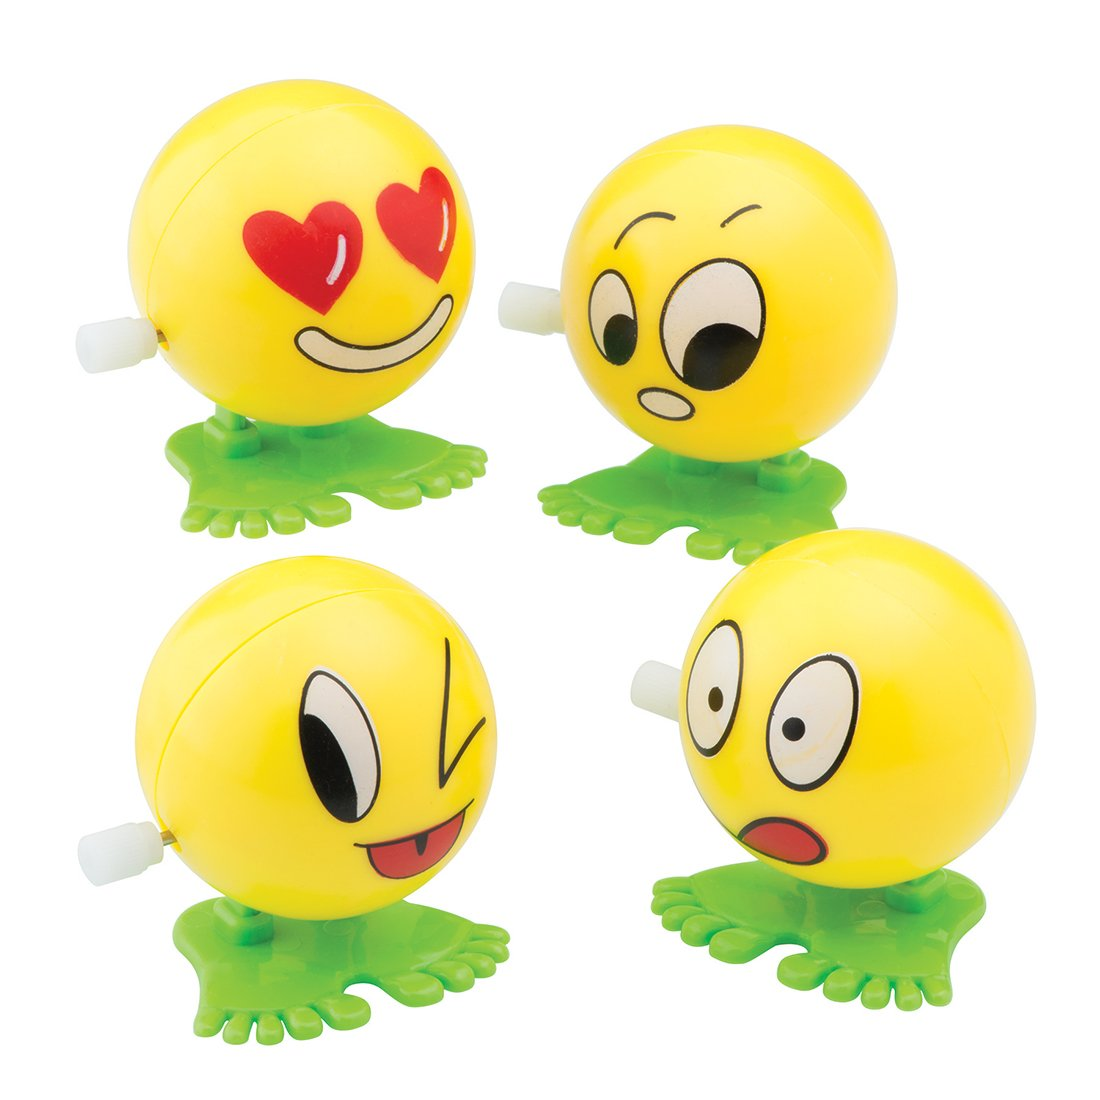 SmileMakers Wind Up Emojis - Prizes 24 per Pack by SmileMakers (Image #1)